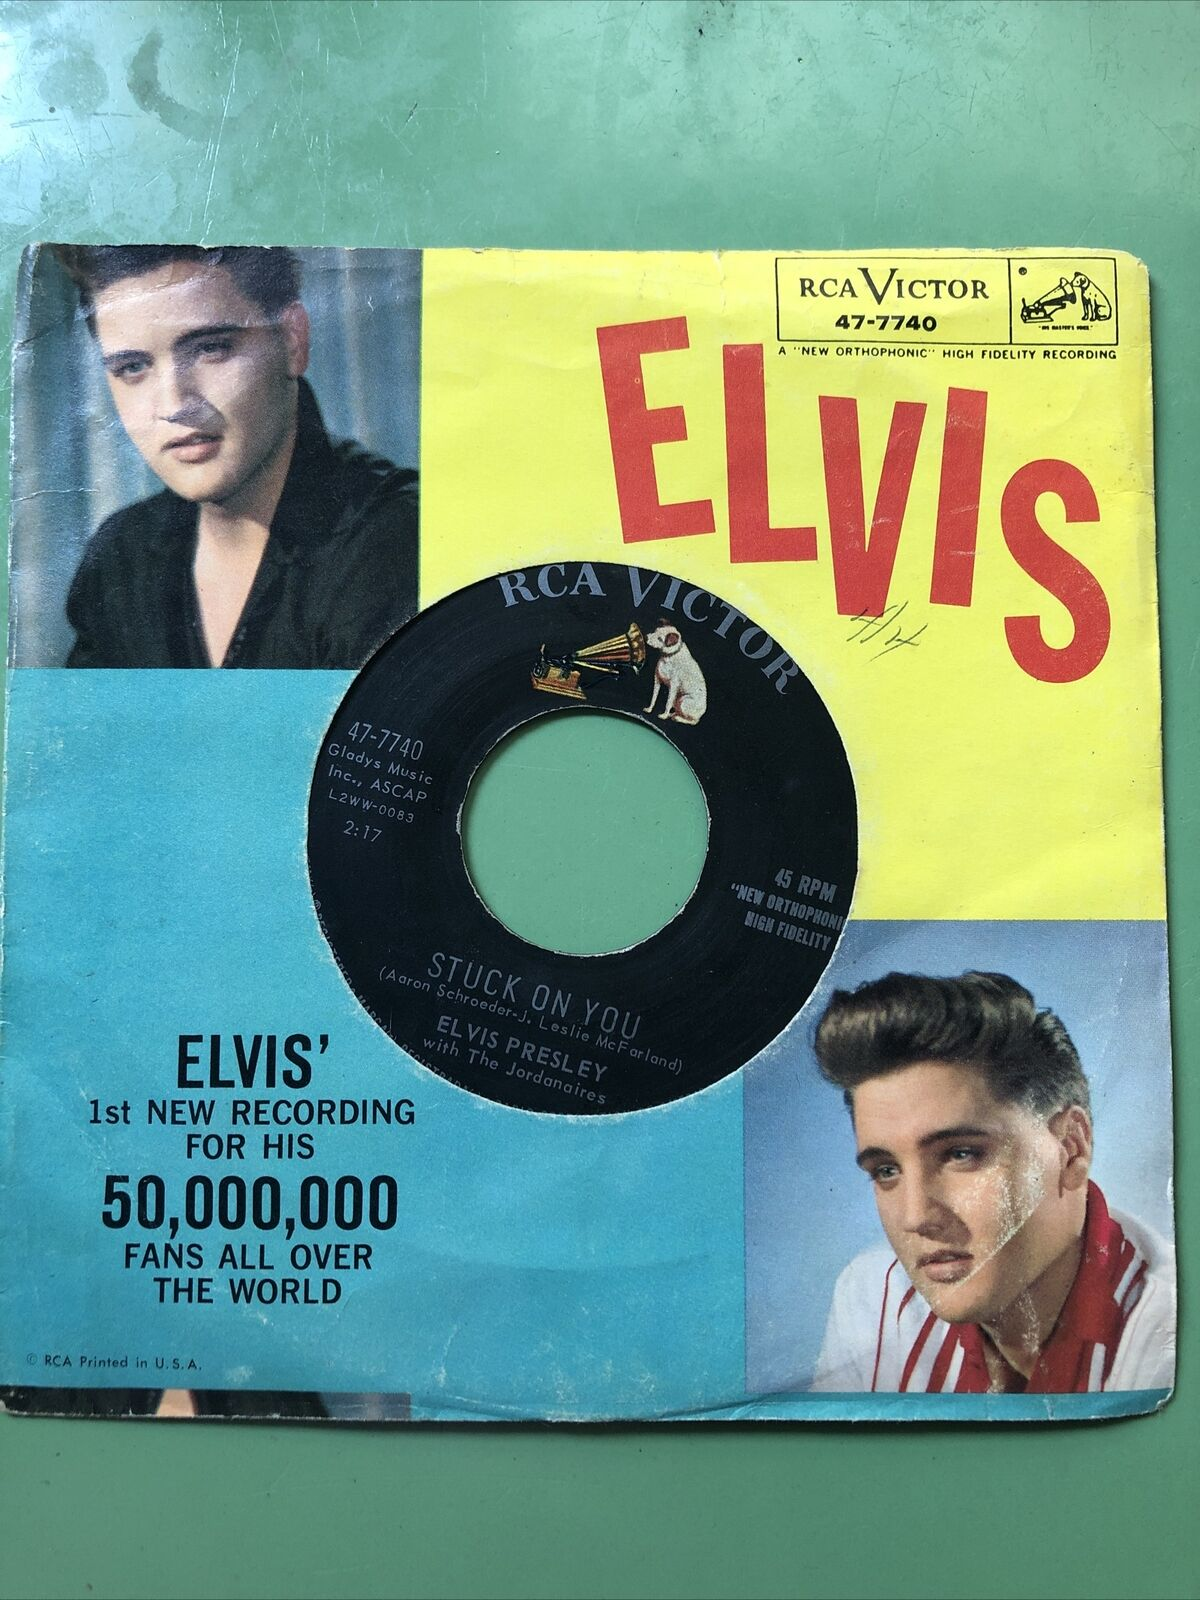 ELVIS PRESLEY - STUCK ON YOU/FAME AND FORTUNE - 1960 RCA VICTOR 47-7740 45RPM